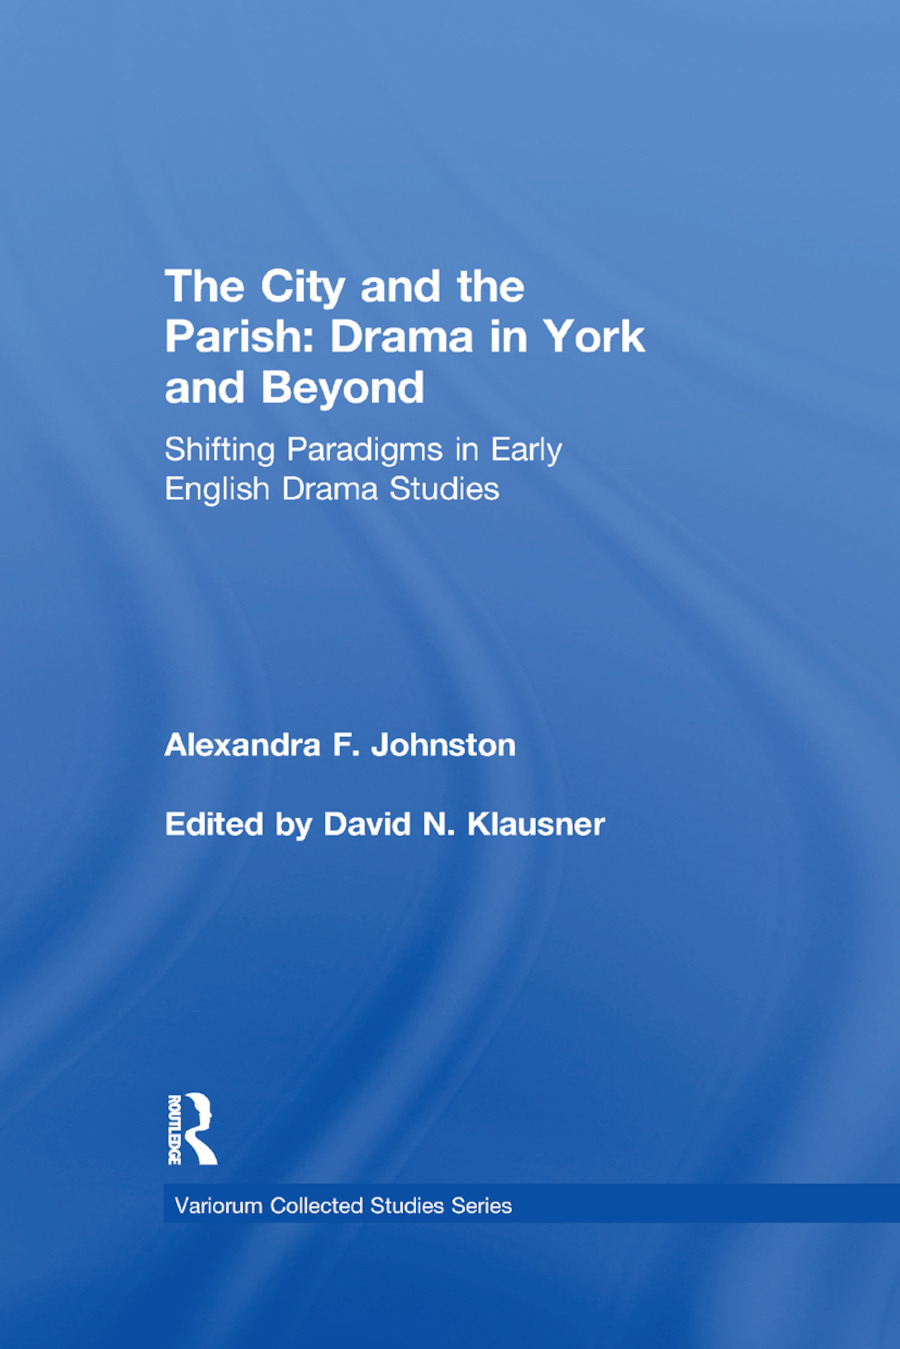 The City and the Parish: Drama in York and Beyond: Shifting Paradigms in Early English Drama Studies, 1st Edition (Paperback) book cover